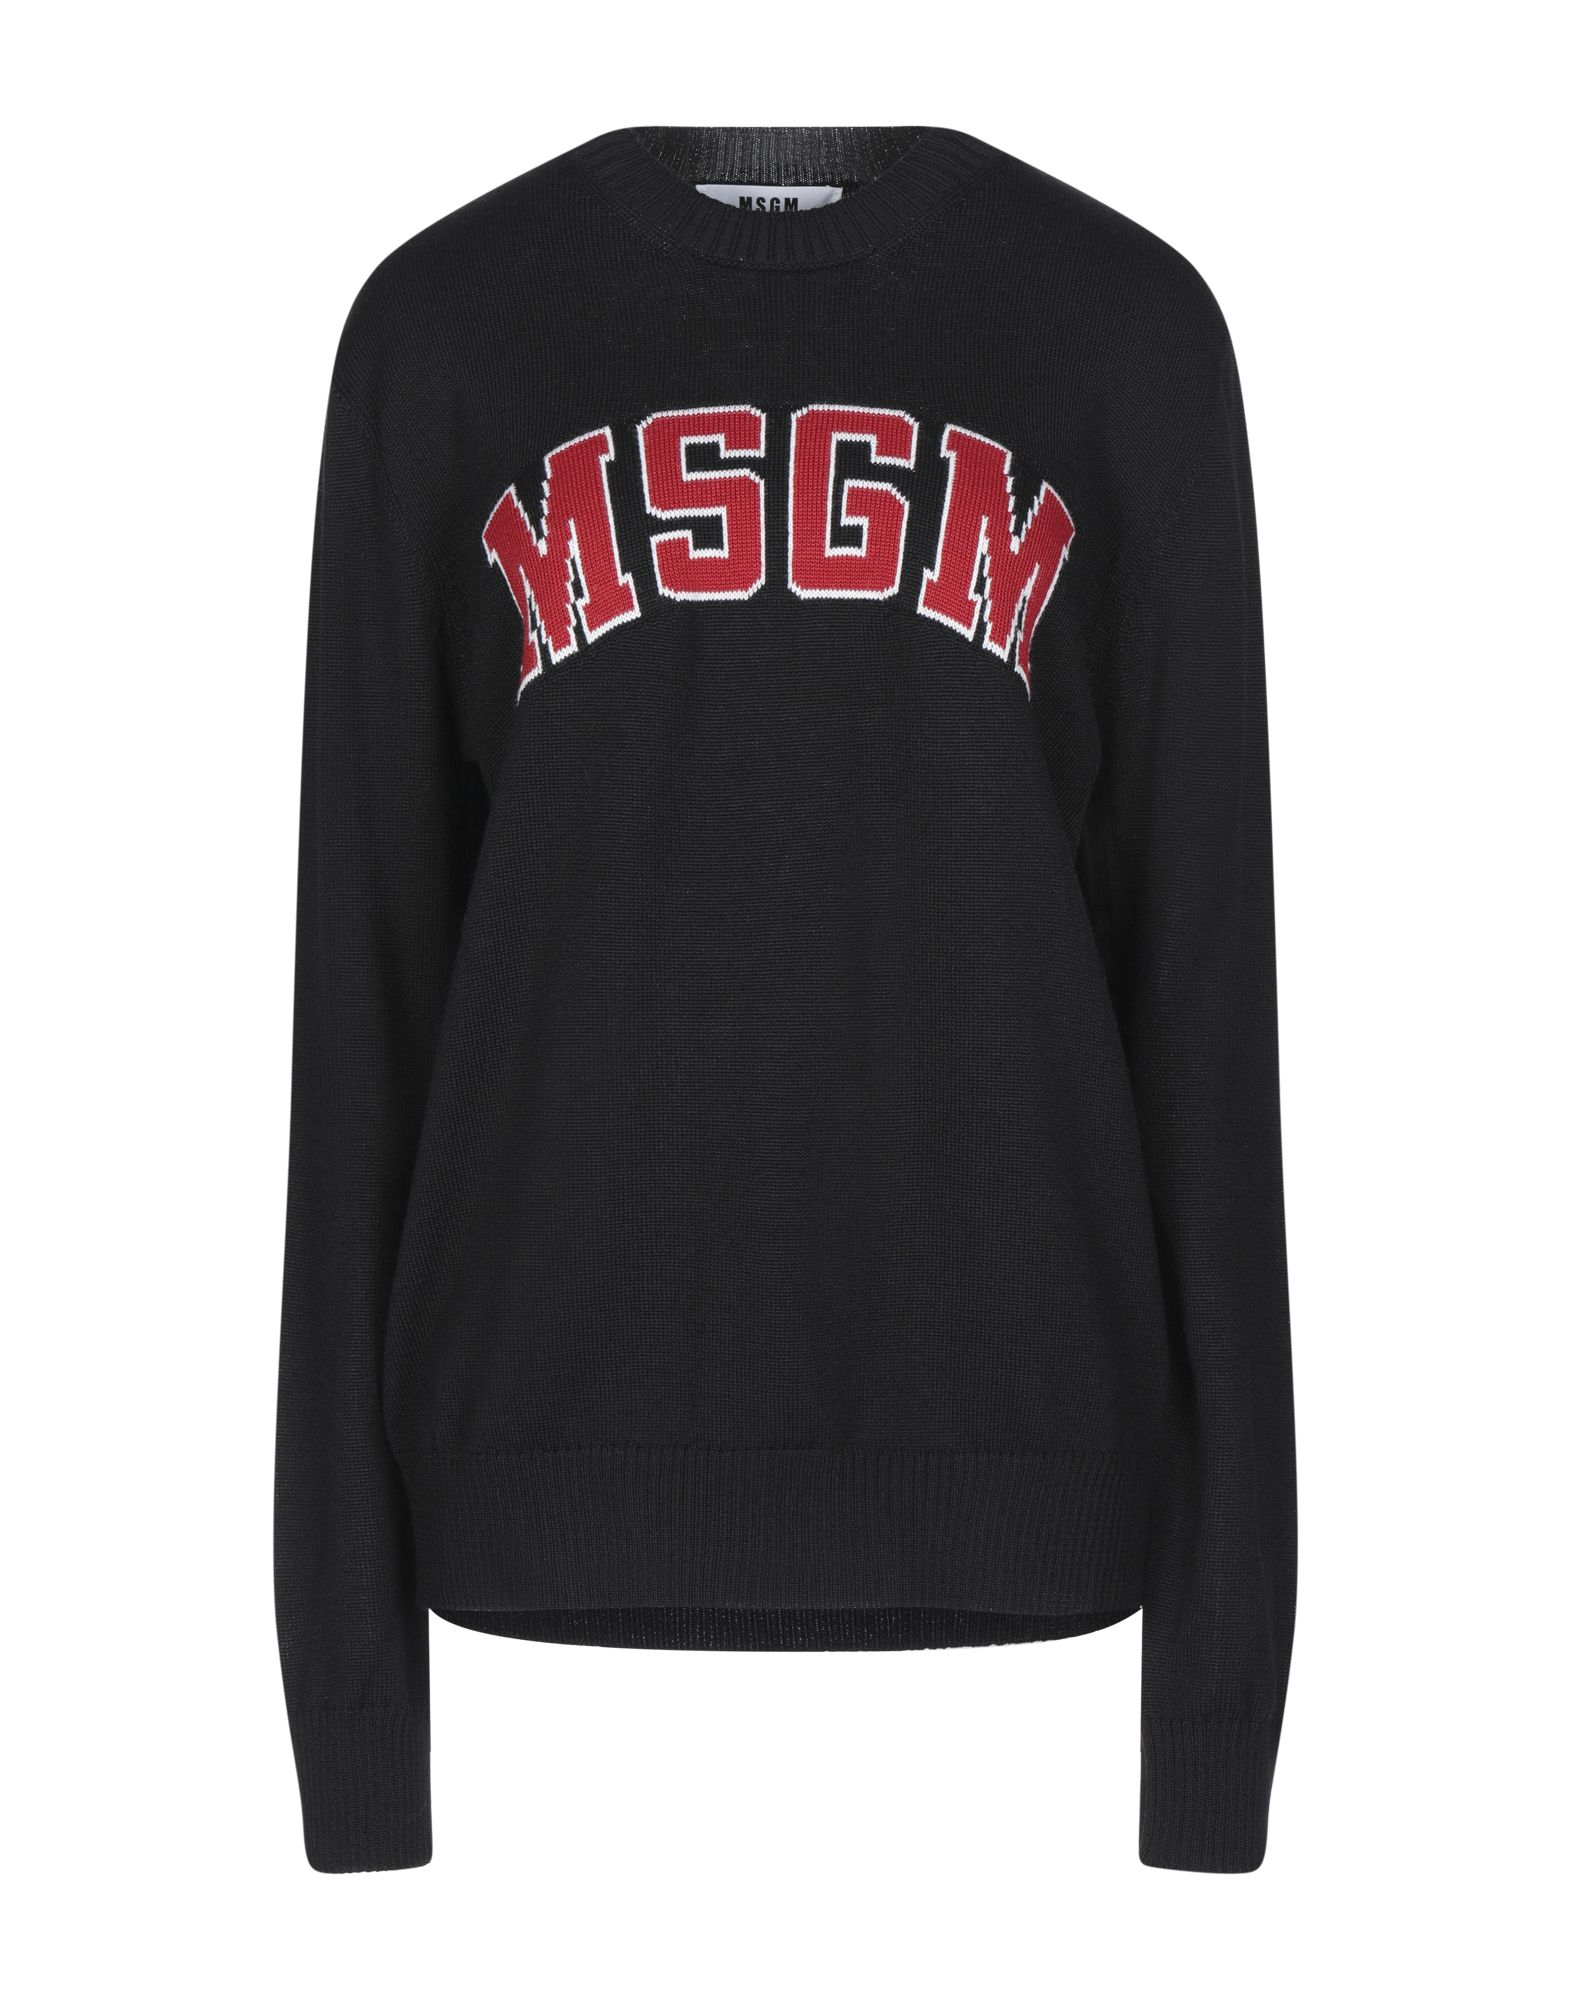 MSGM Sweaters. knitted, logo, lightweight knit, round collar, solid color, long sleeves, no pockets, large sized. 50% Wool, 50% Acrylic